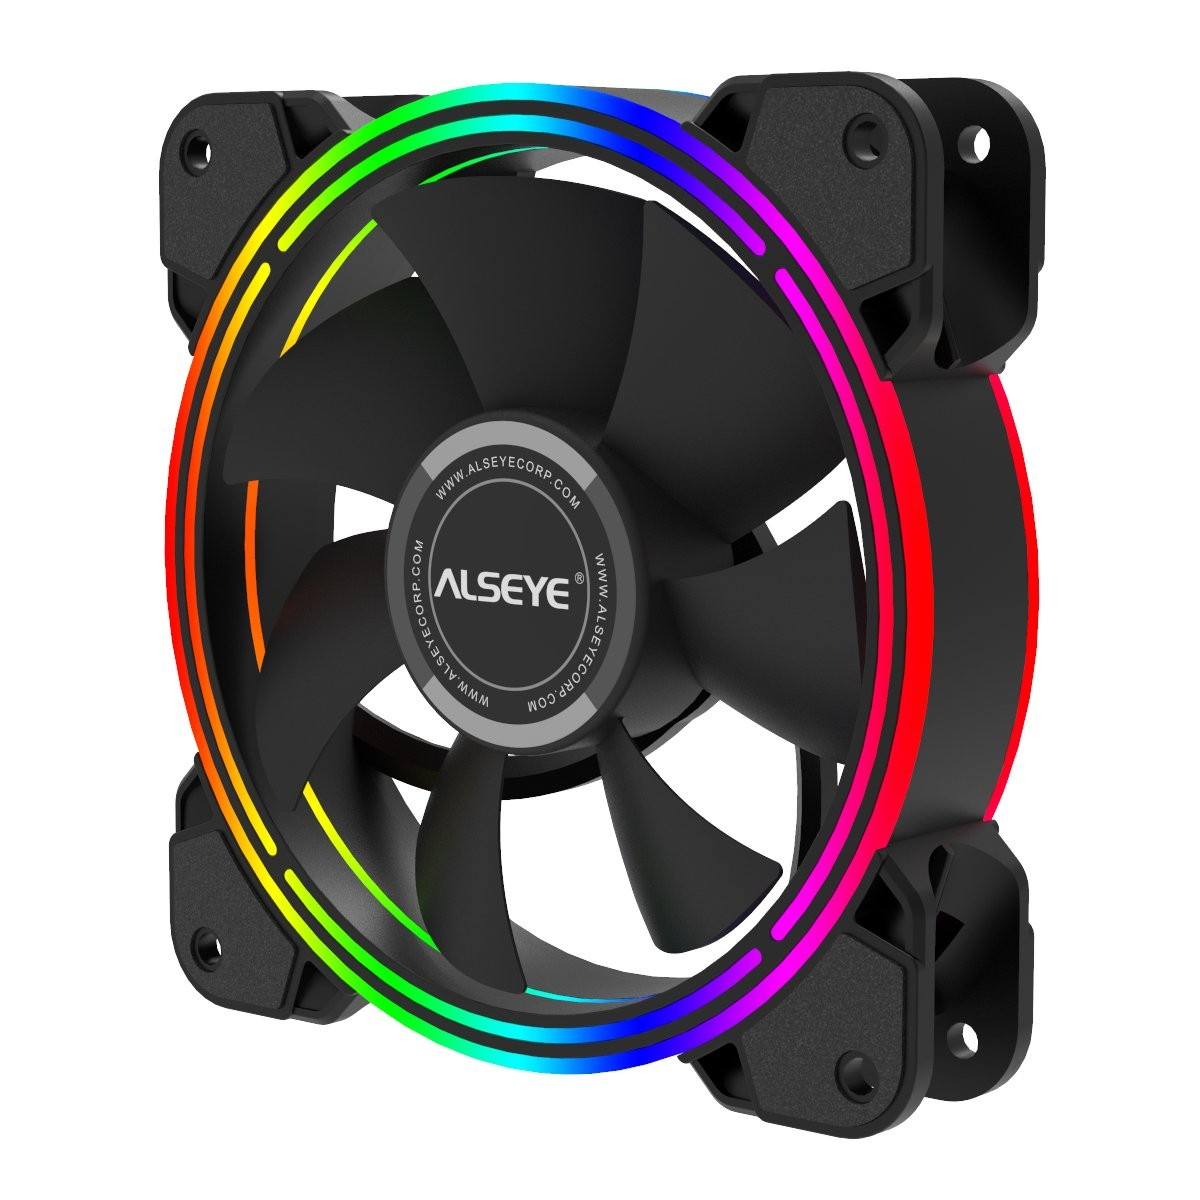 Cooler para Gabinete Alseye Halo 4.0 Black, RGB, 120mm